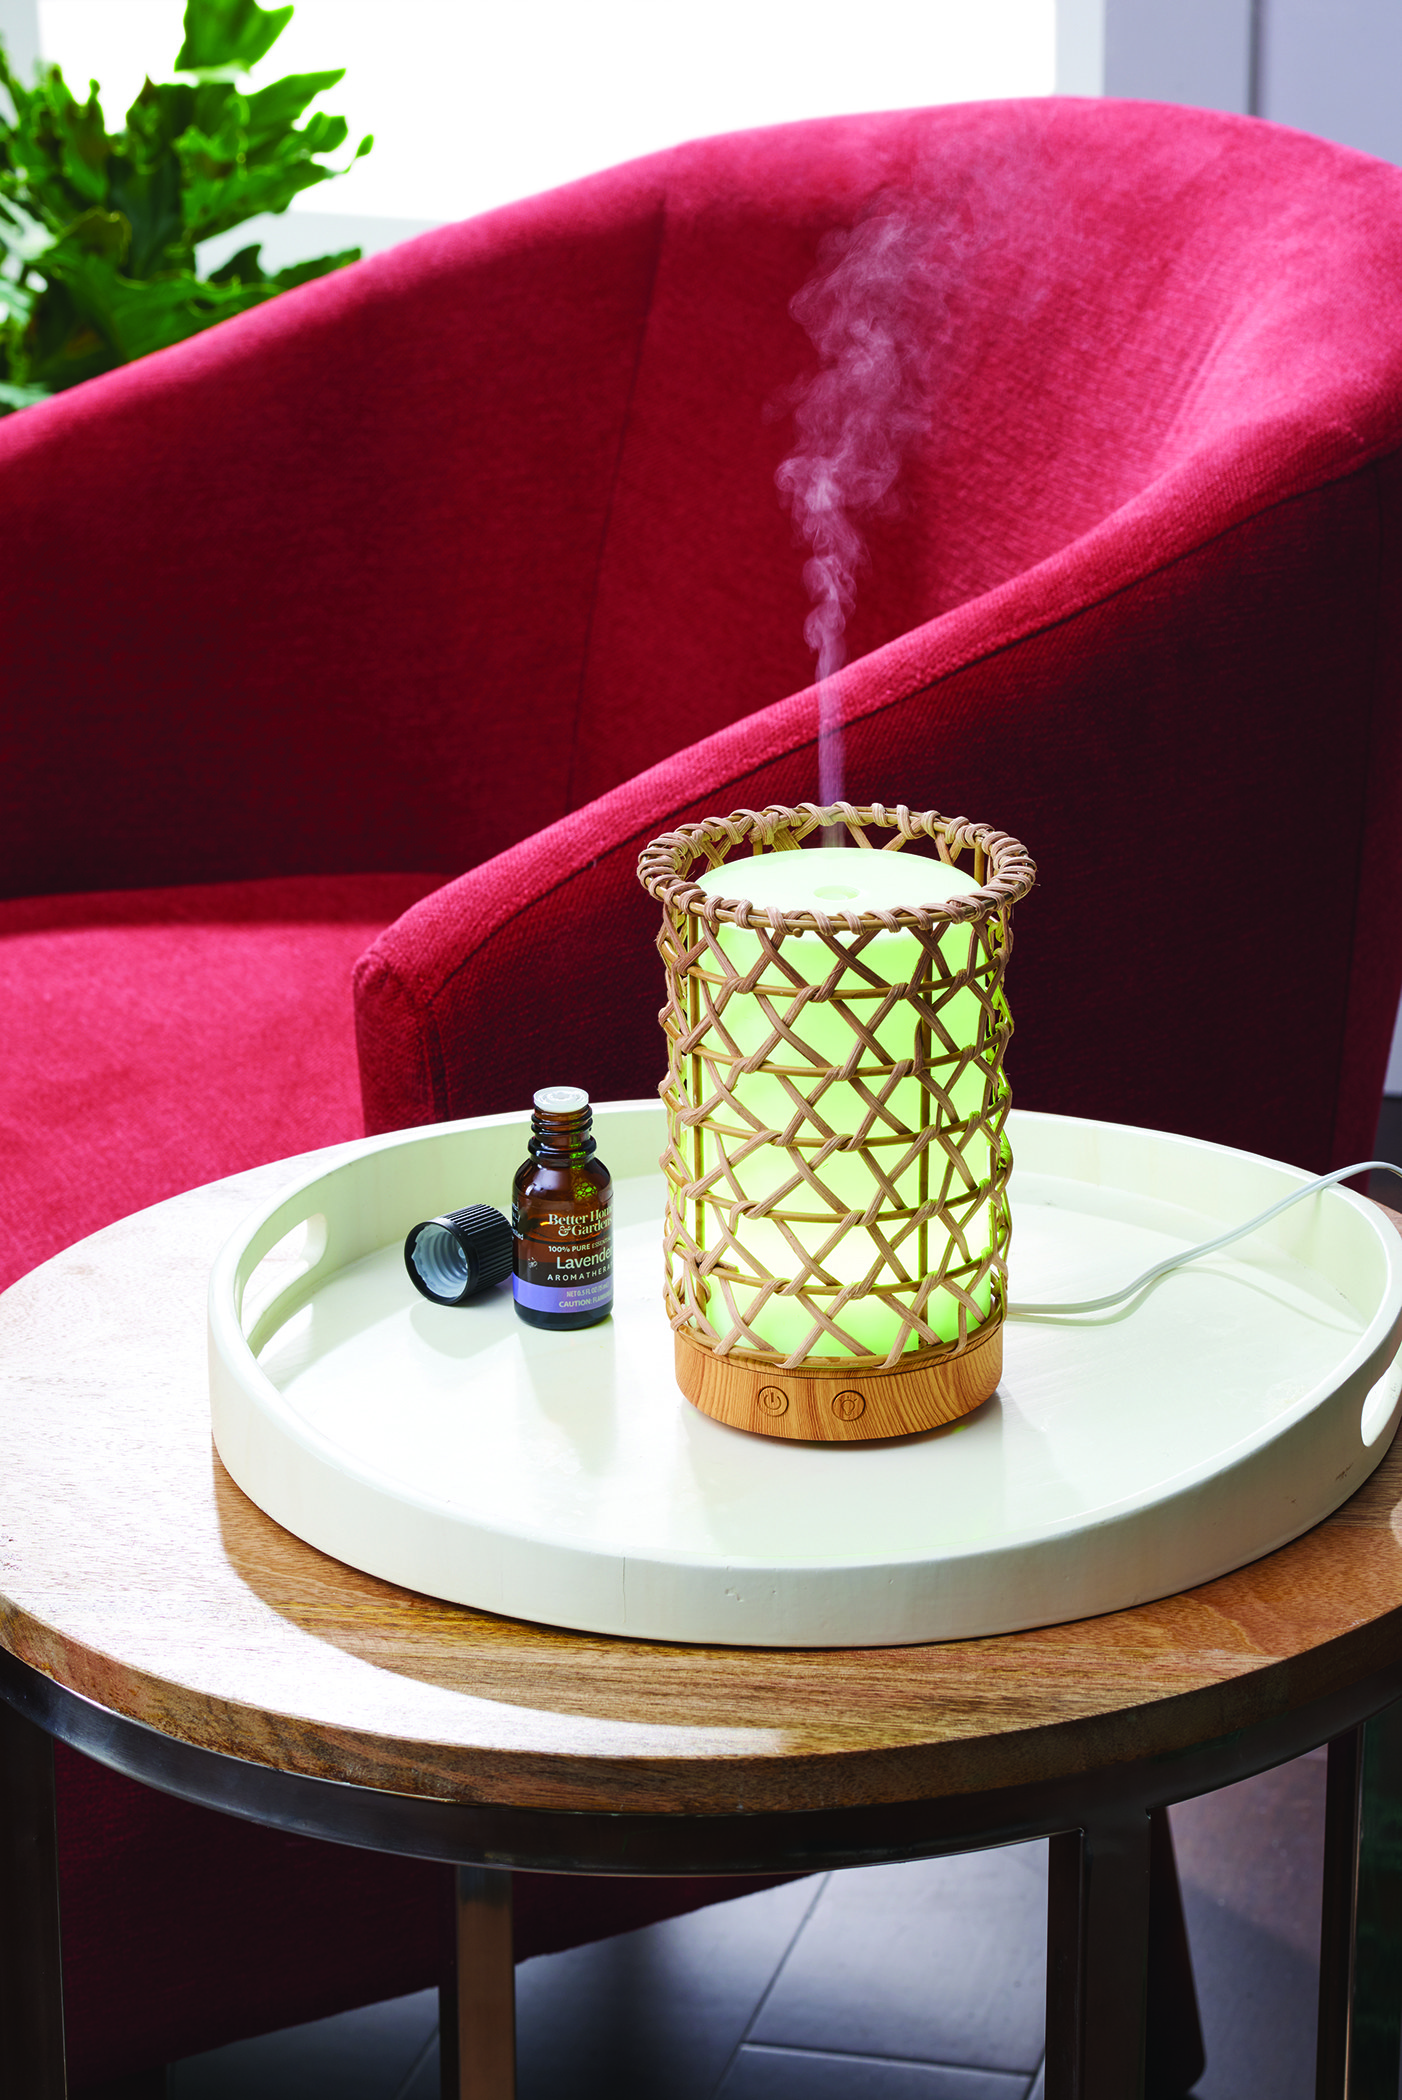 A wooden rattan diffuser on an end table